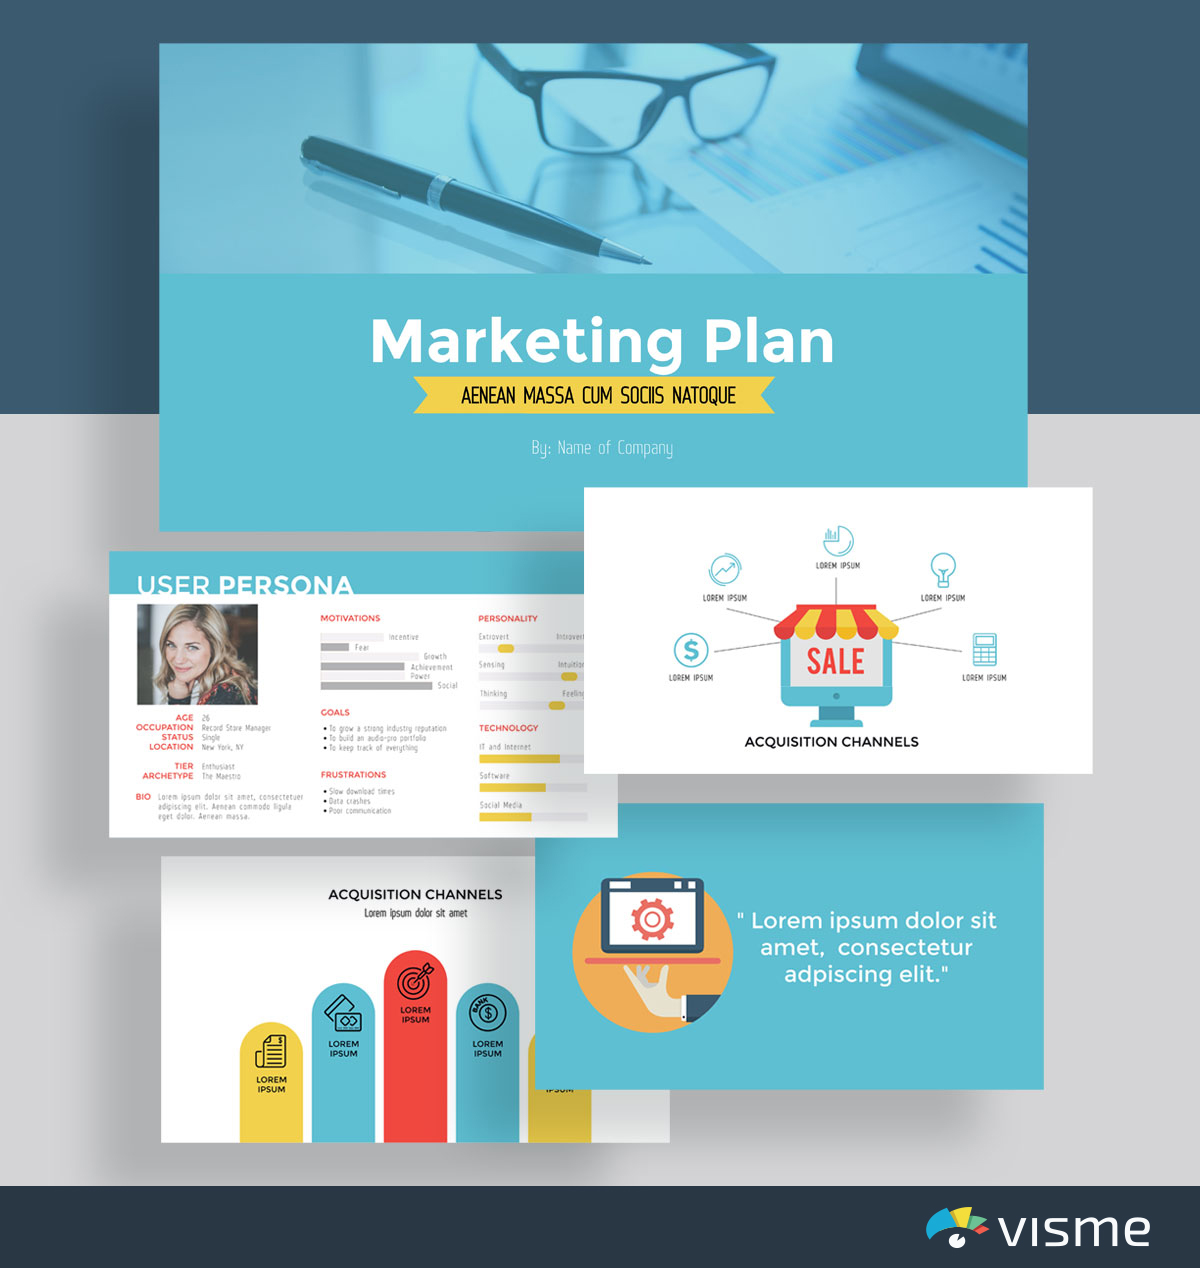 presentation slides - marketing plan template visme